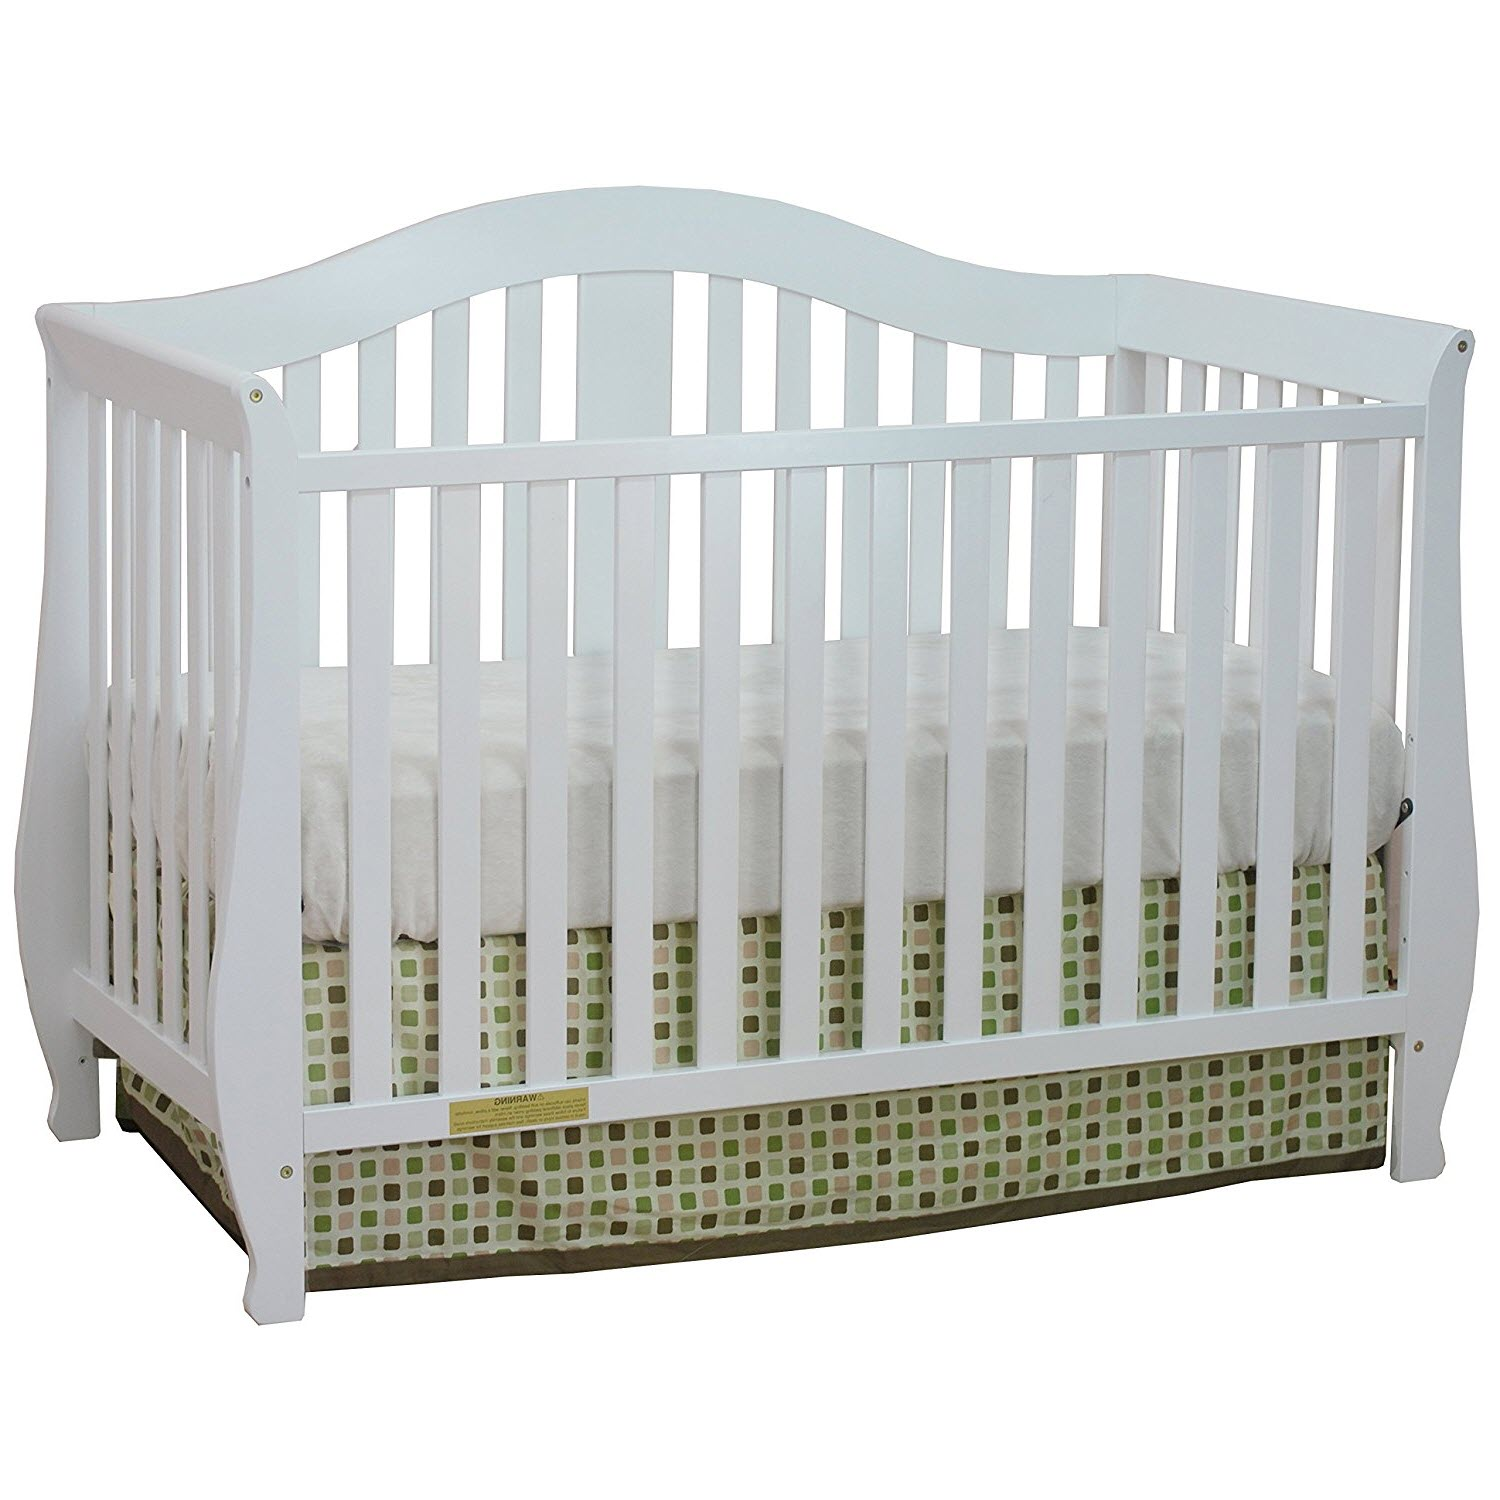 AFG Baby Desiree 4-in-1 Convertible Crib White